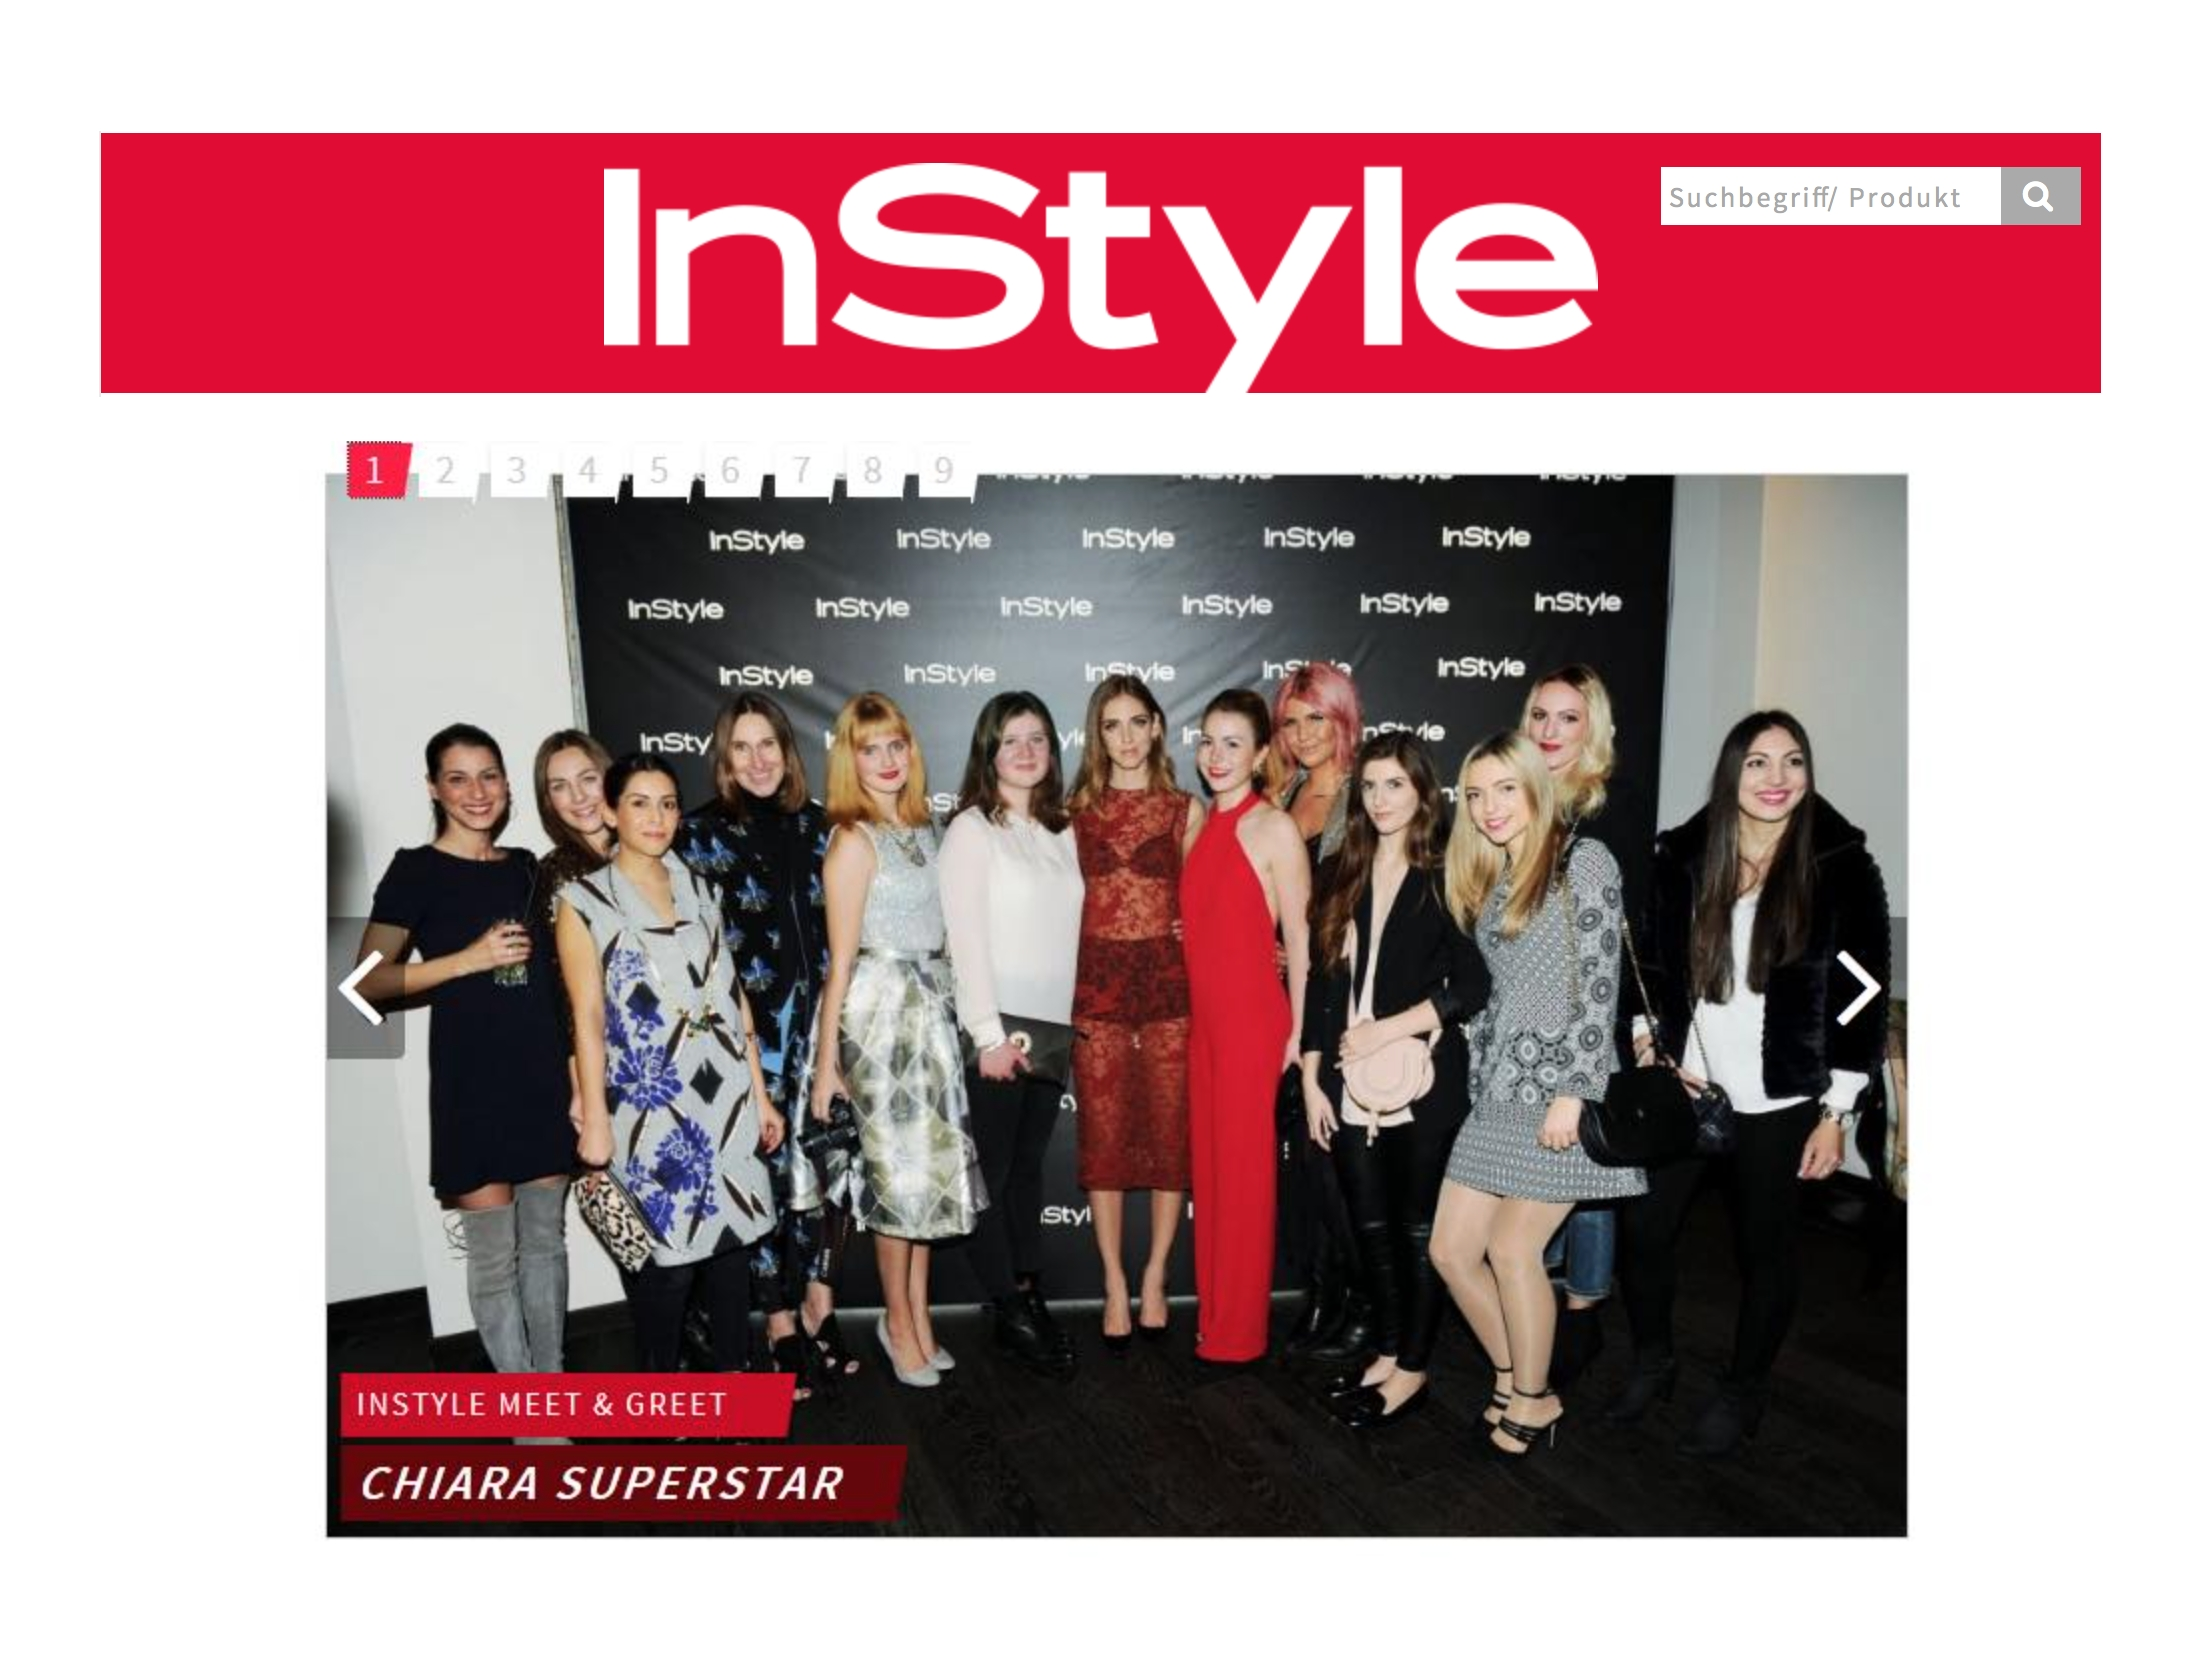 instyle cocktail